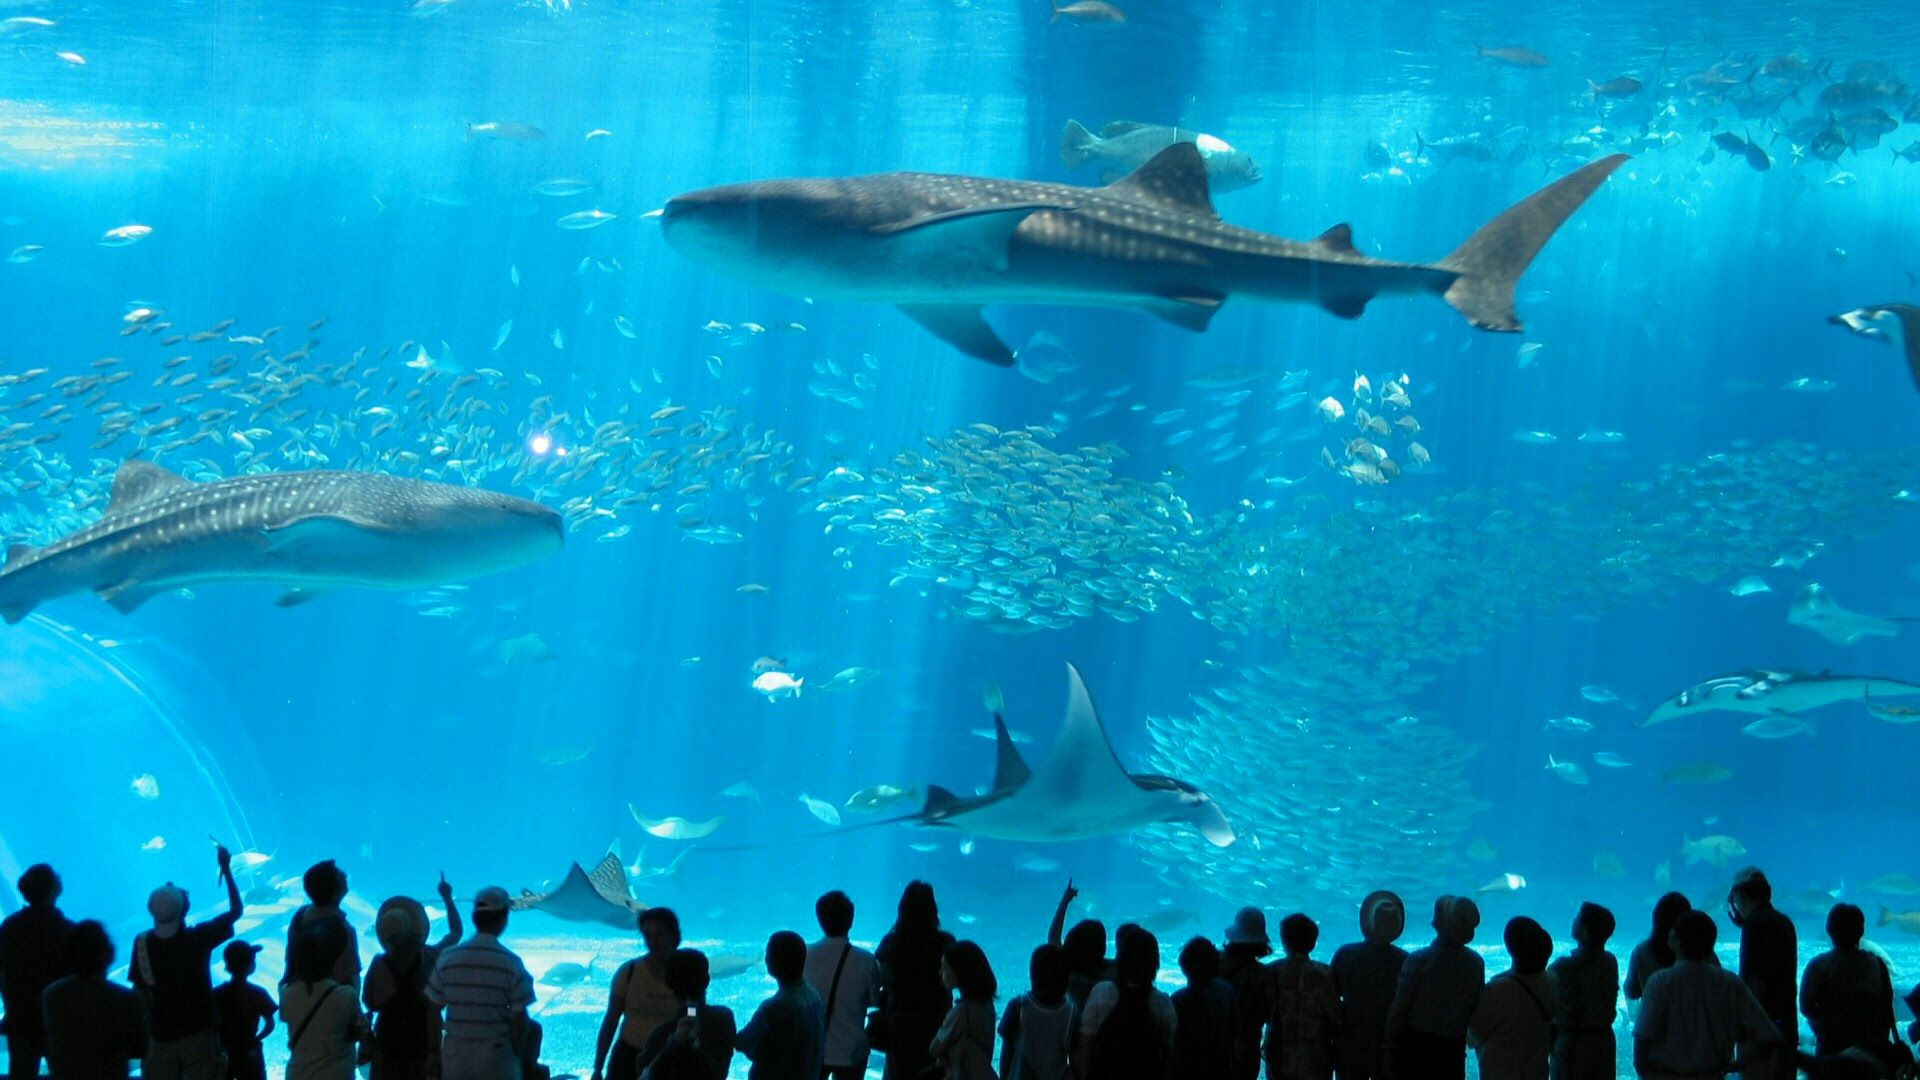 Okinawa Churaumi Aquarium Japan | ♥Wanderlust♥ | Okinawa ...